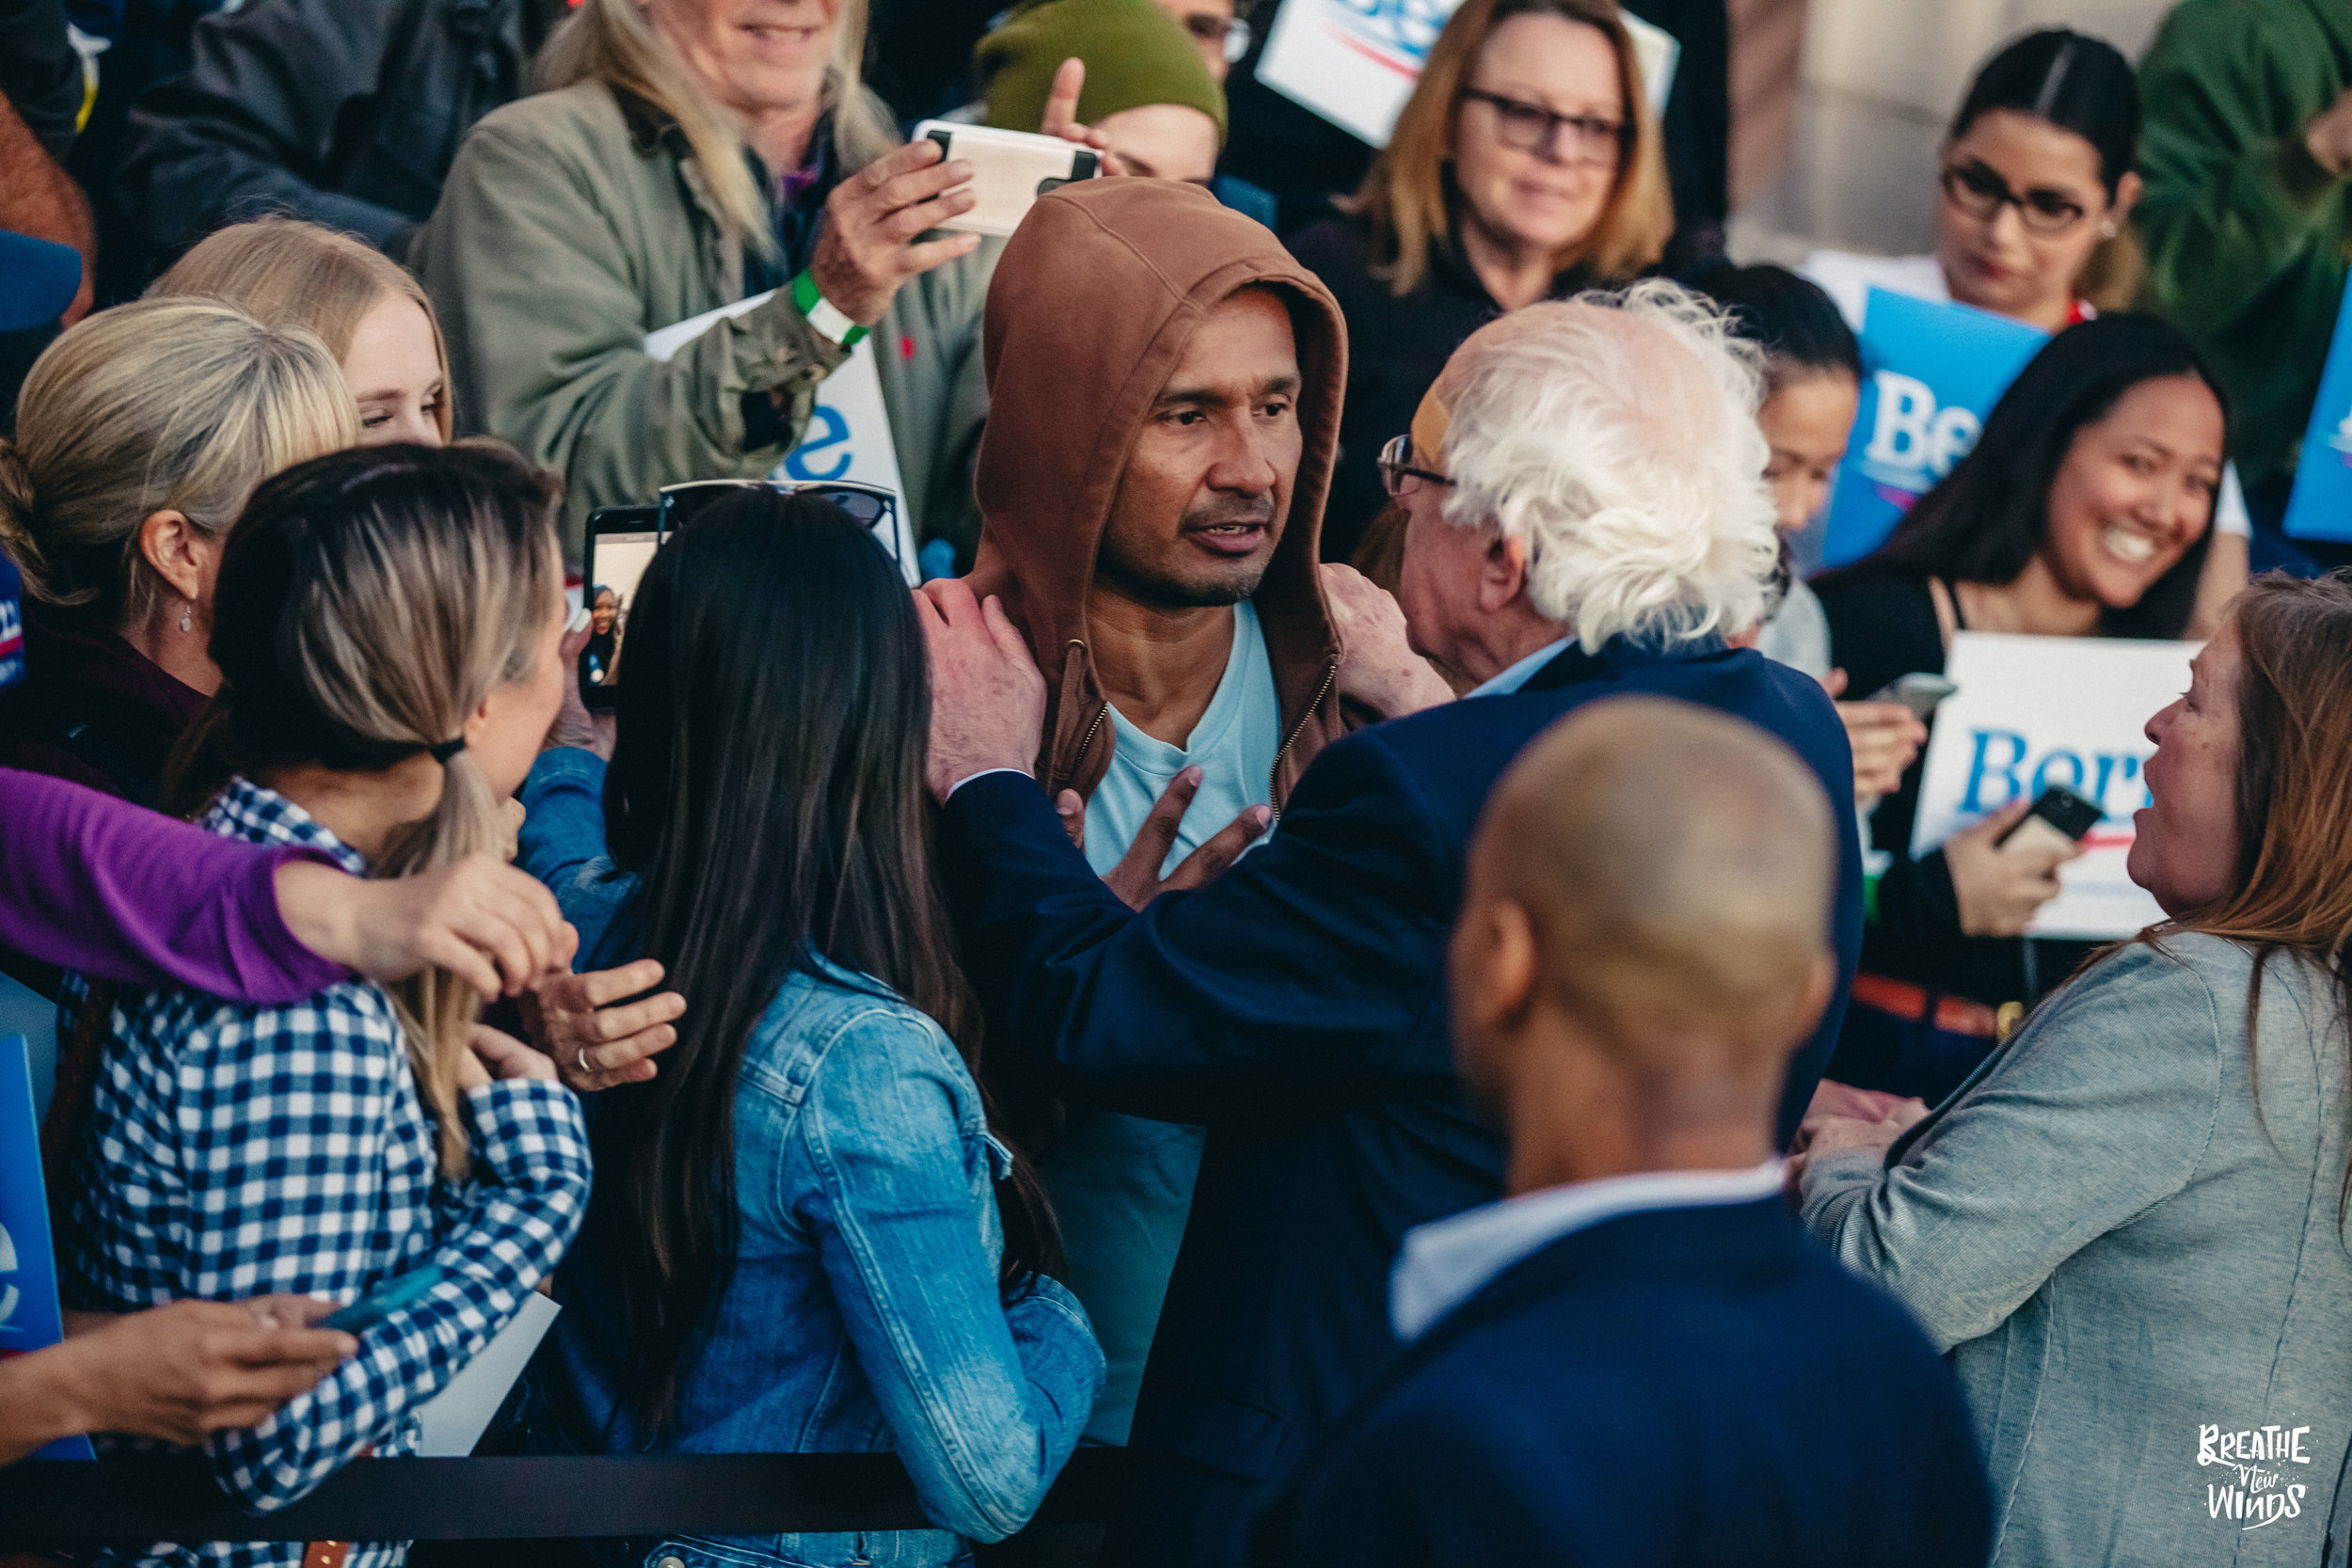 BernieInSD_22March2019-BernieAndFriends (74 of 78).jpg